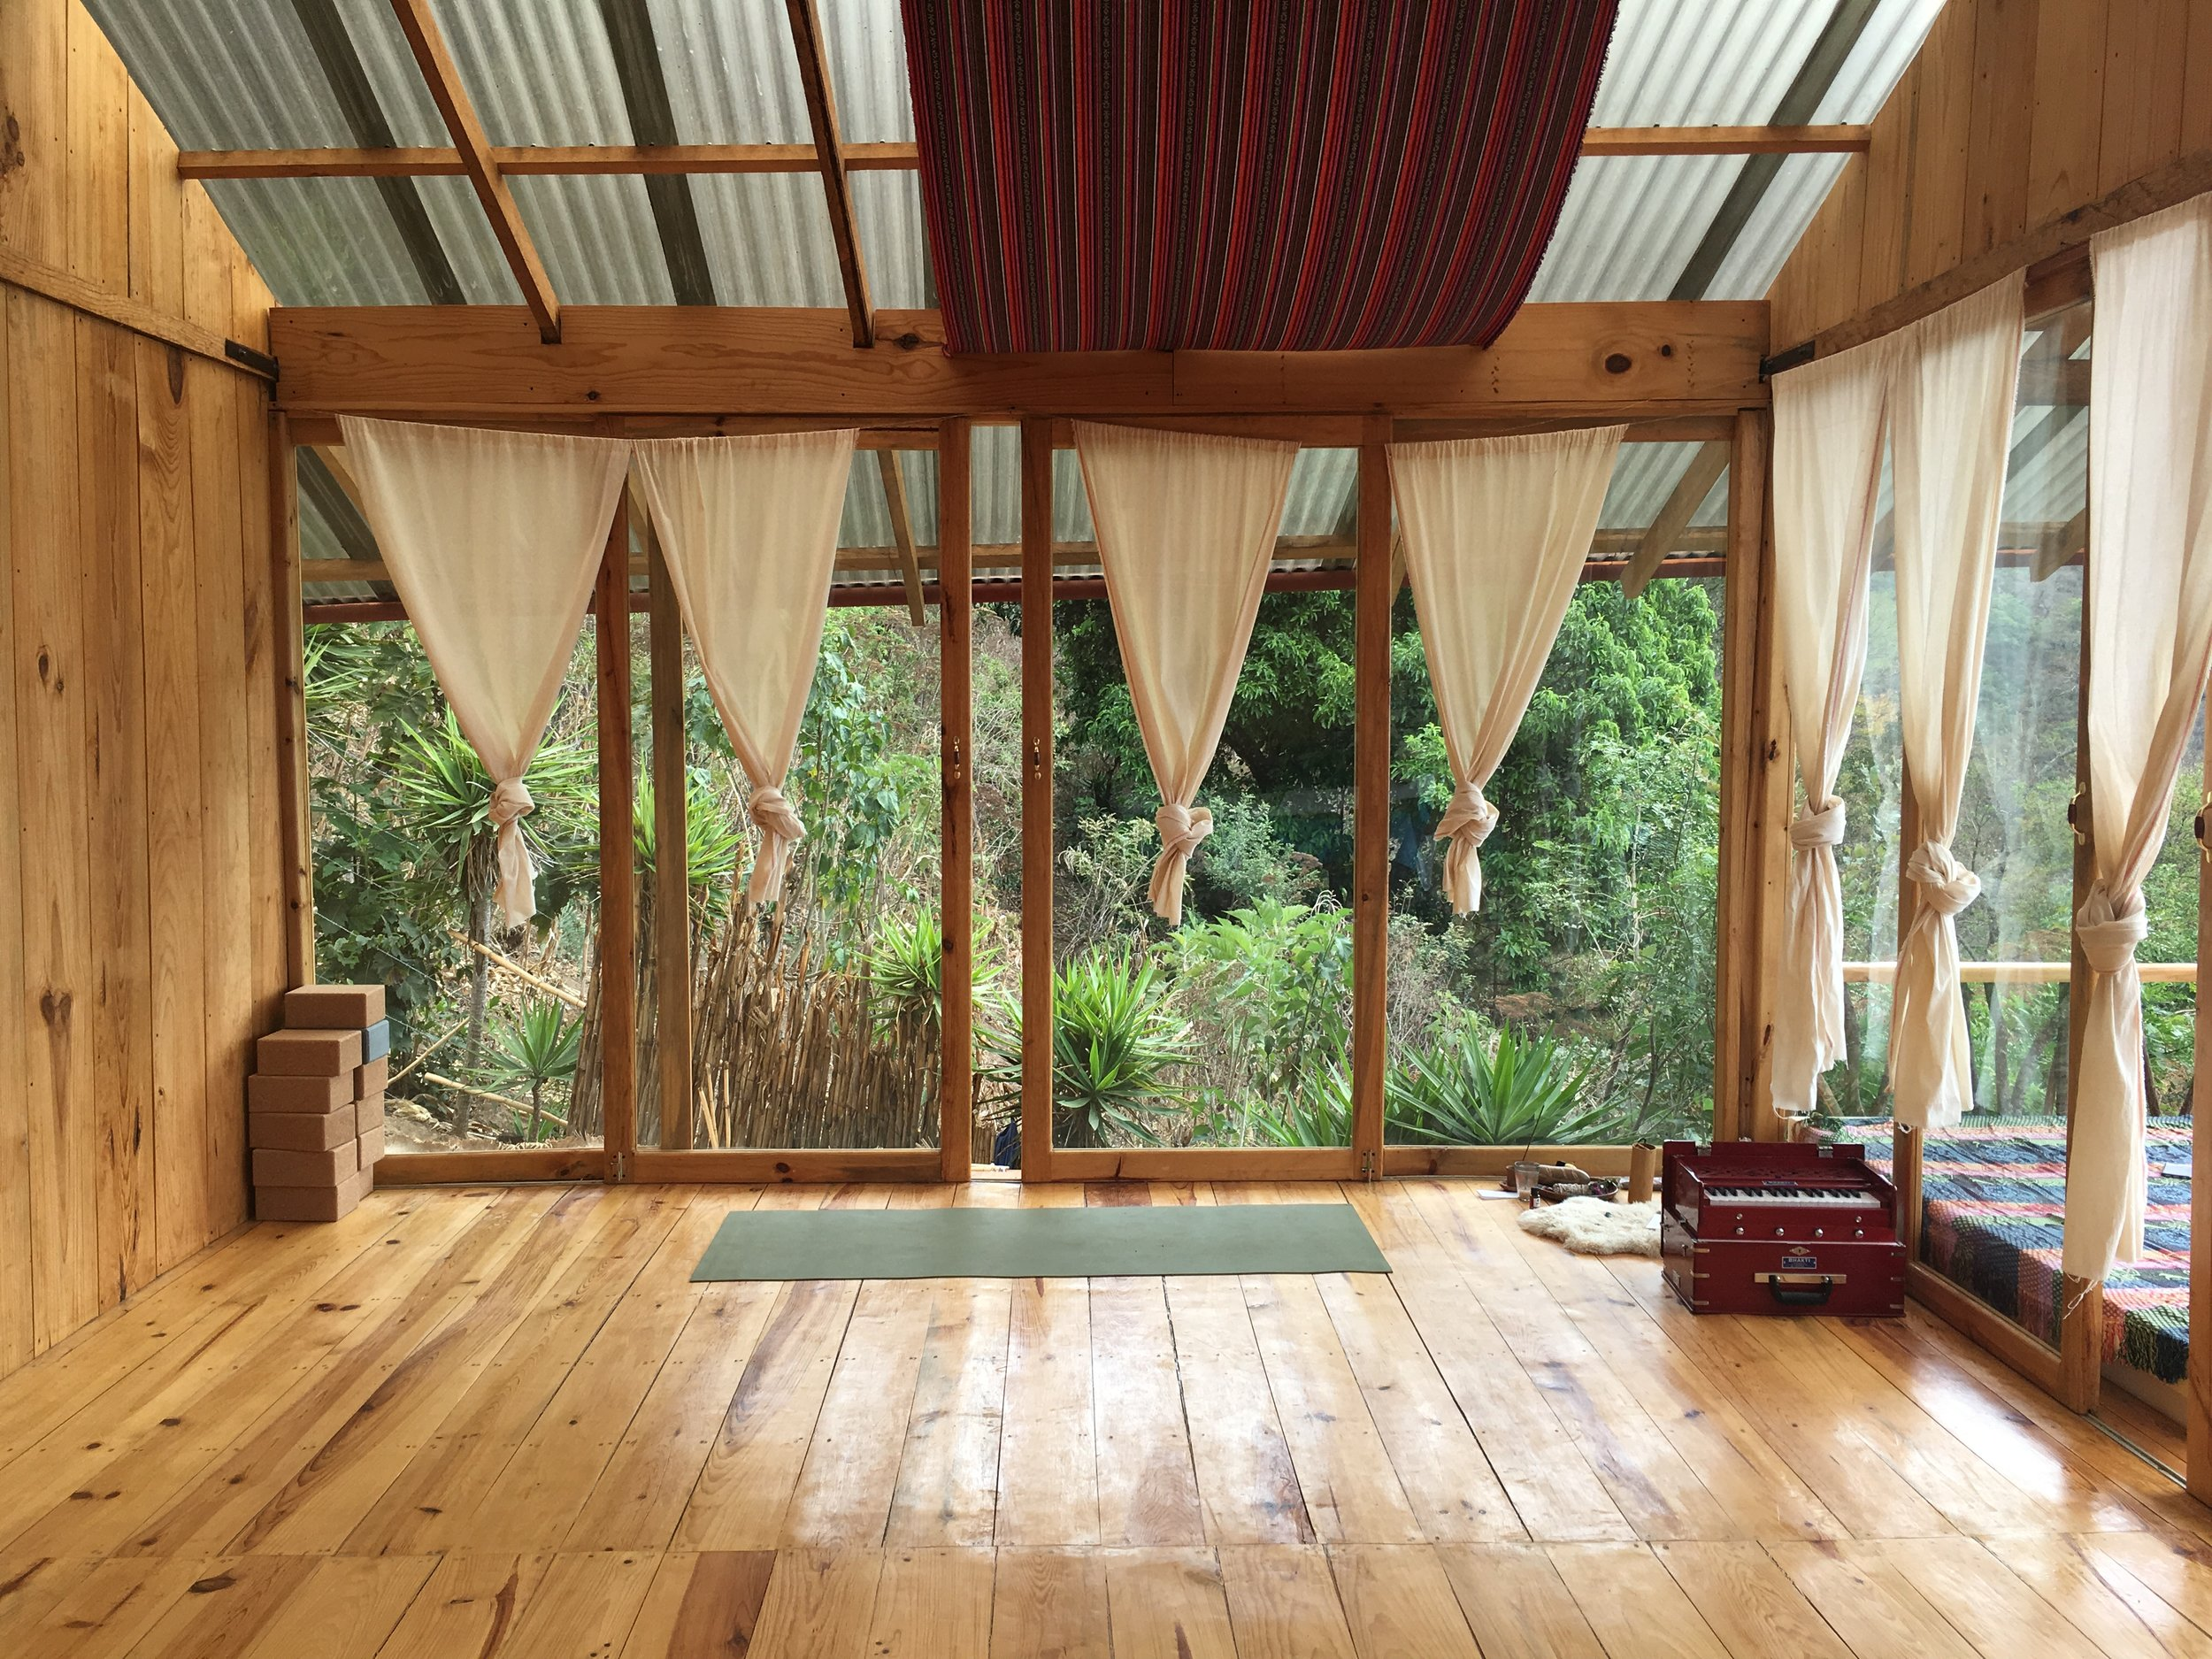 Beautiful room for Yoga